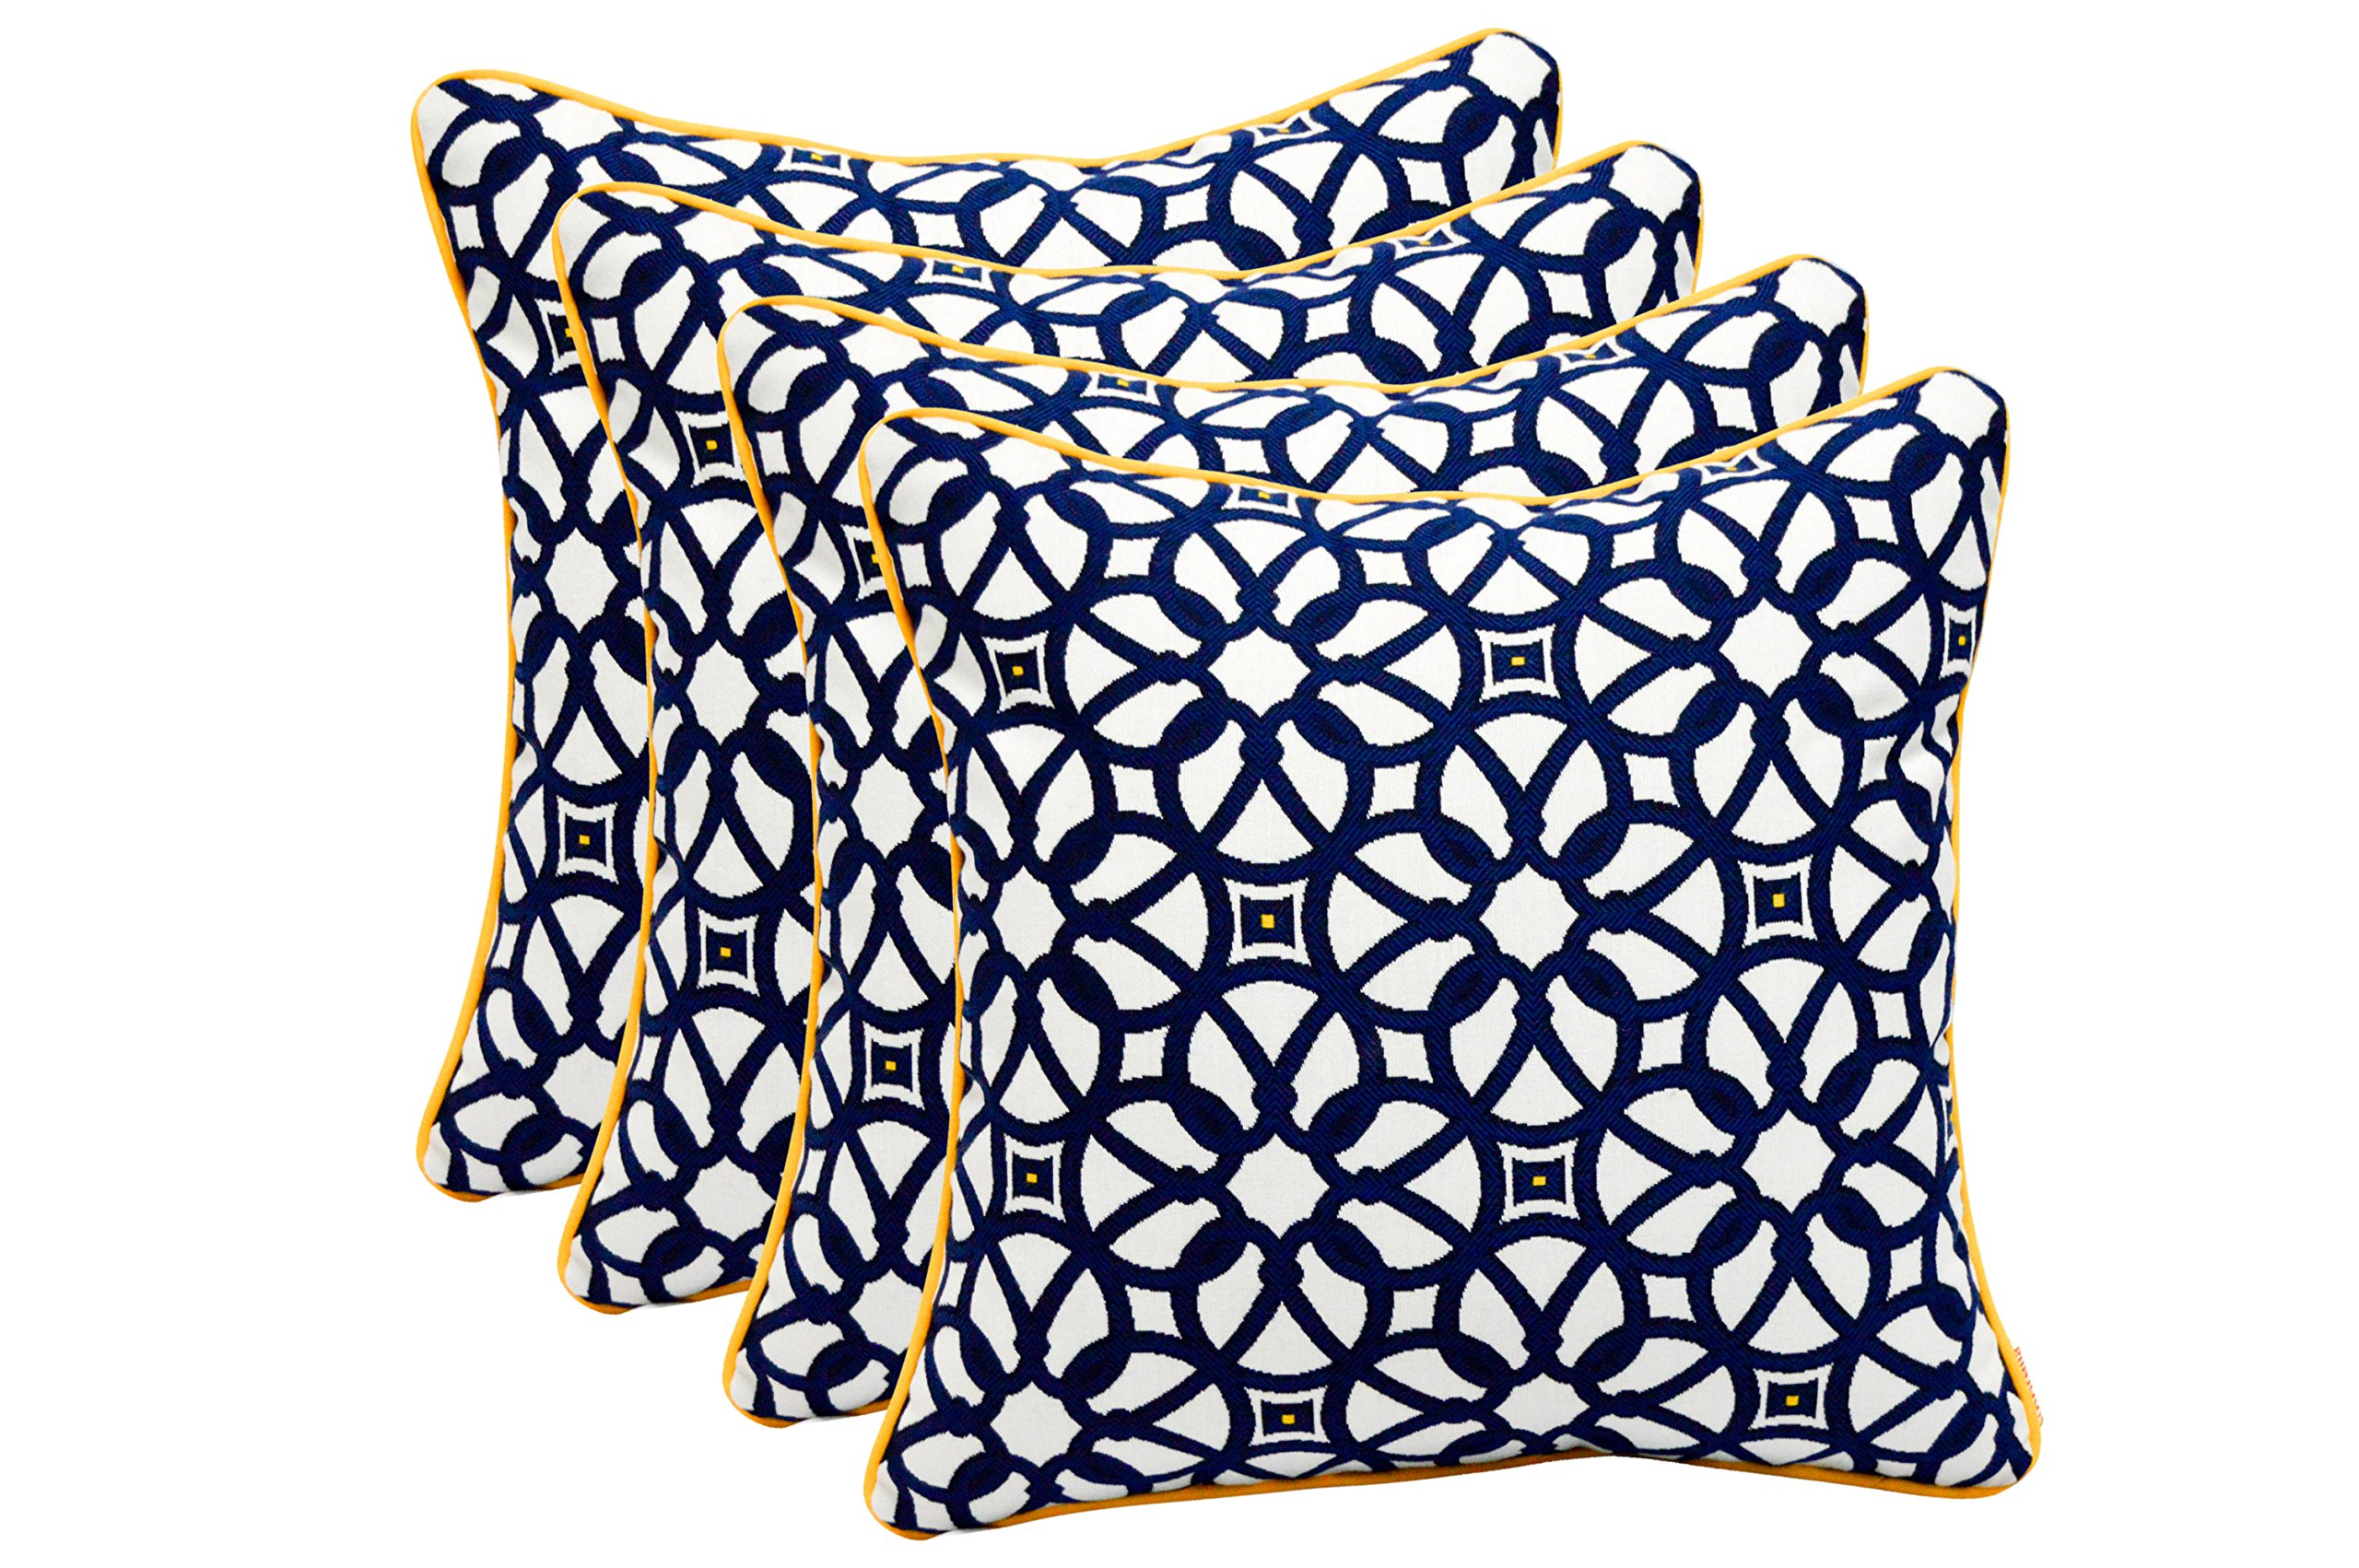 Set of 4 In Outdoor 17'' Square Decorative Throw Pillows - Sunbrella Lux Indigo w/ Yellow Cording